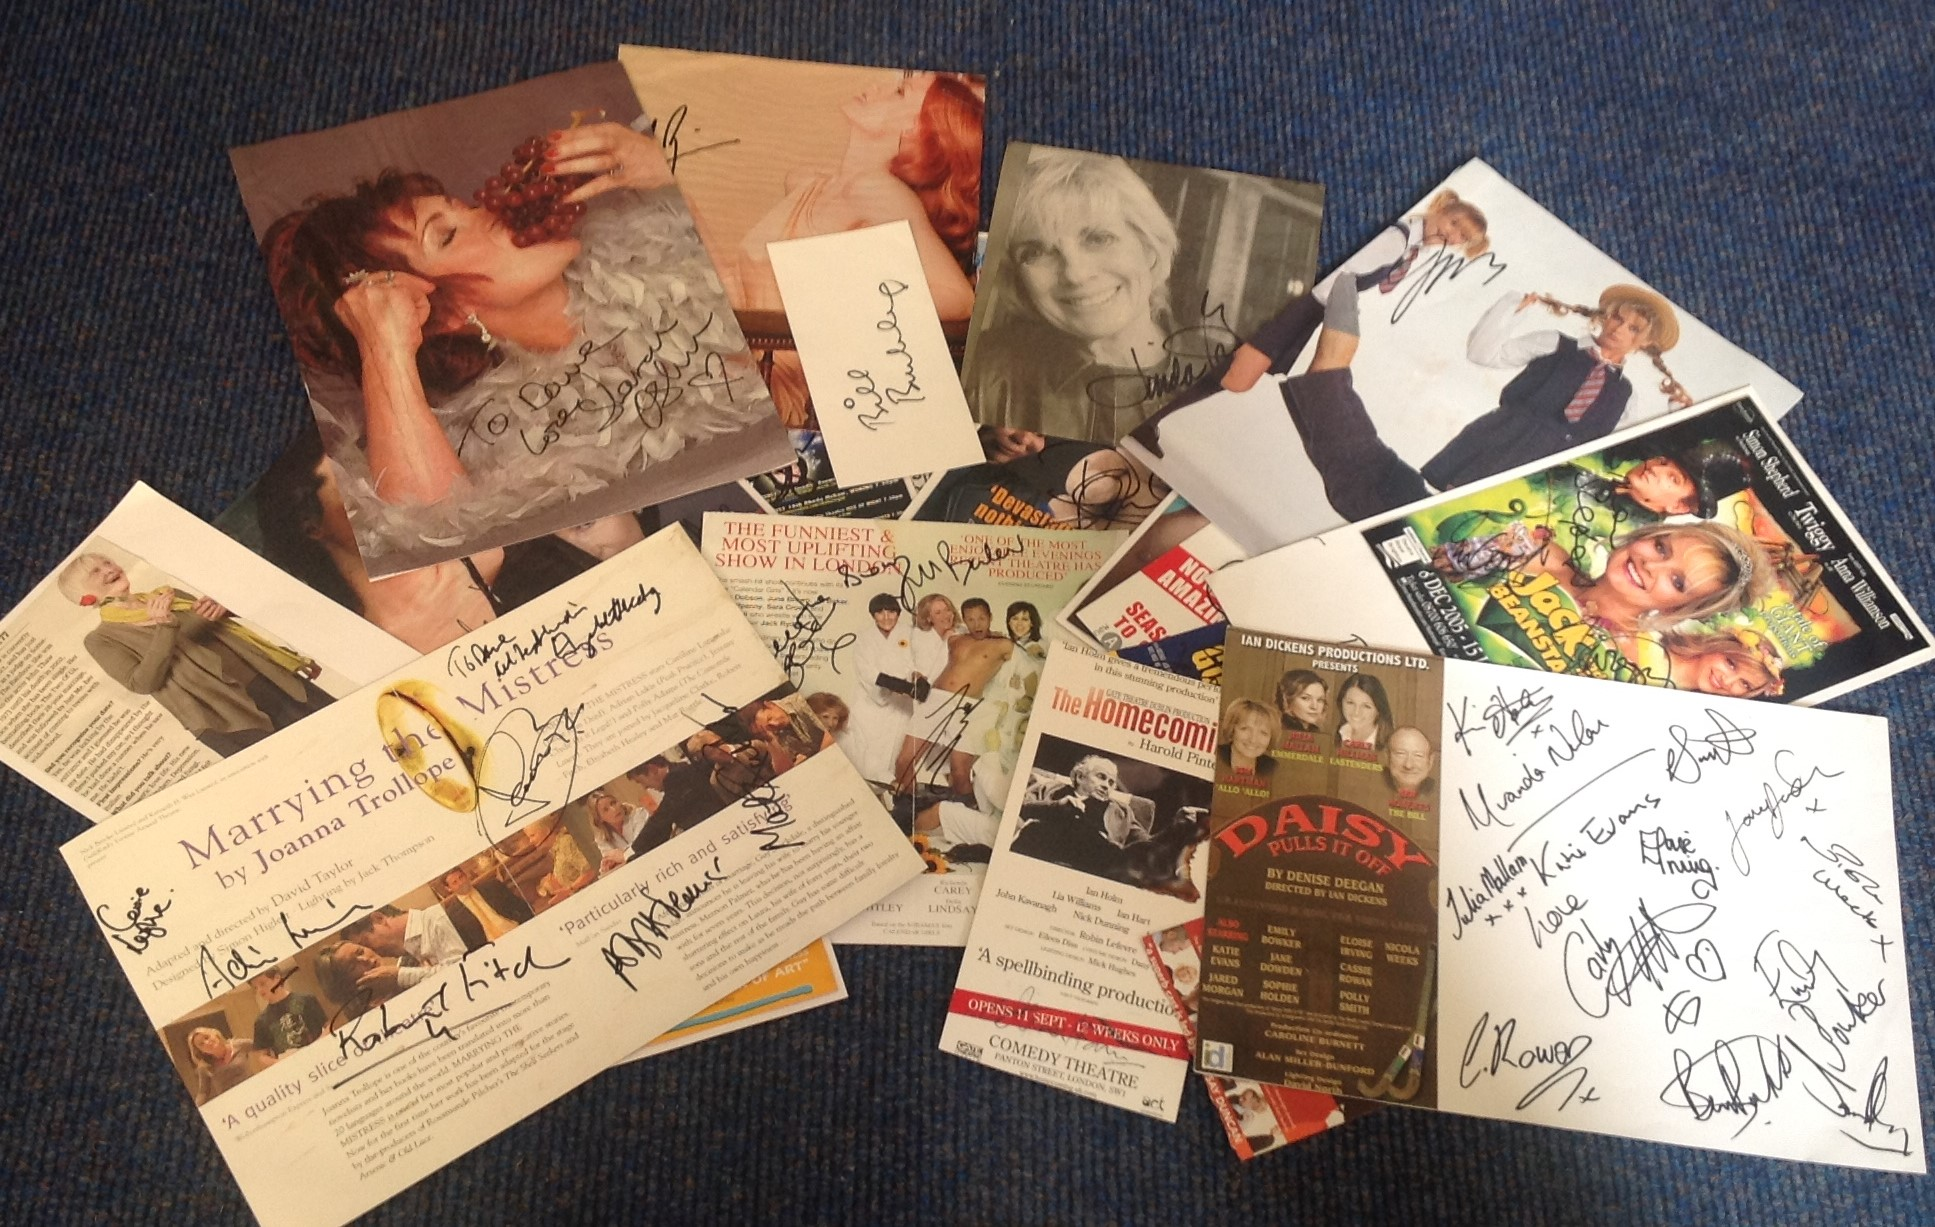 Lot 19 - Assorted TV/film signed collection. 24 items. Variety of flyers and newspaper photos all signed.